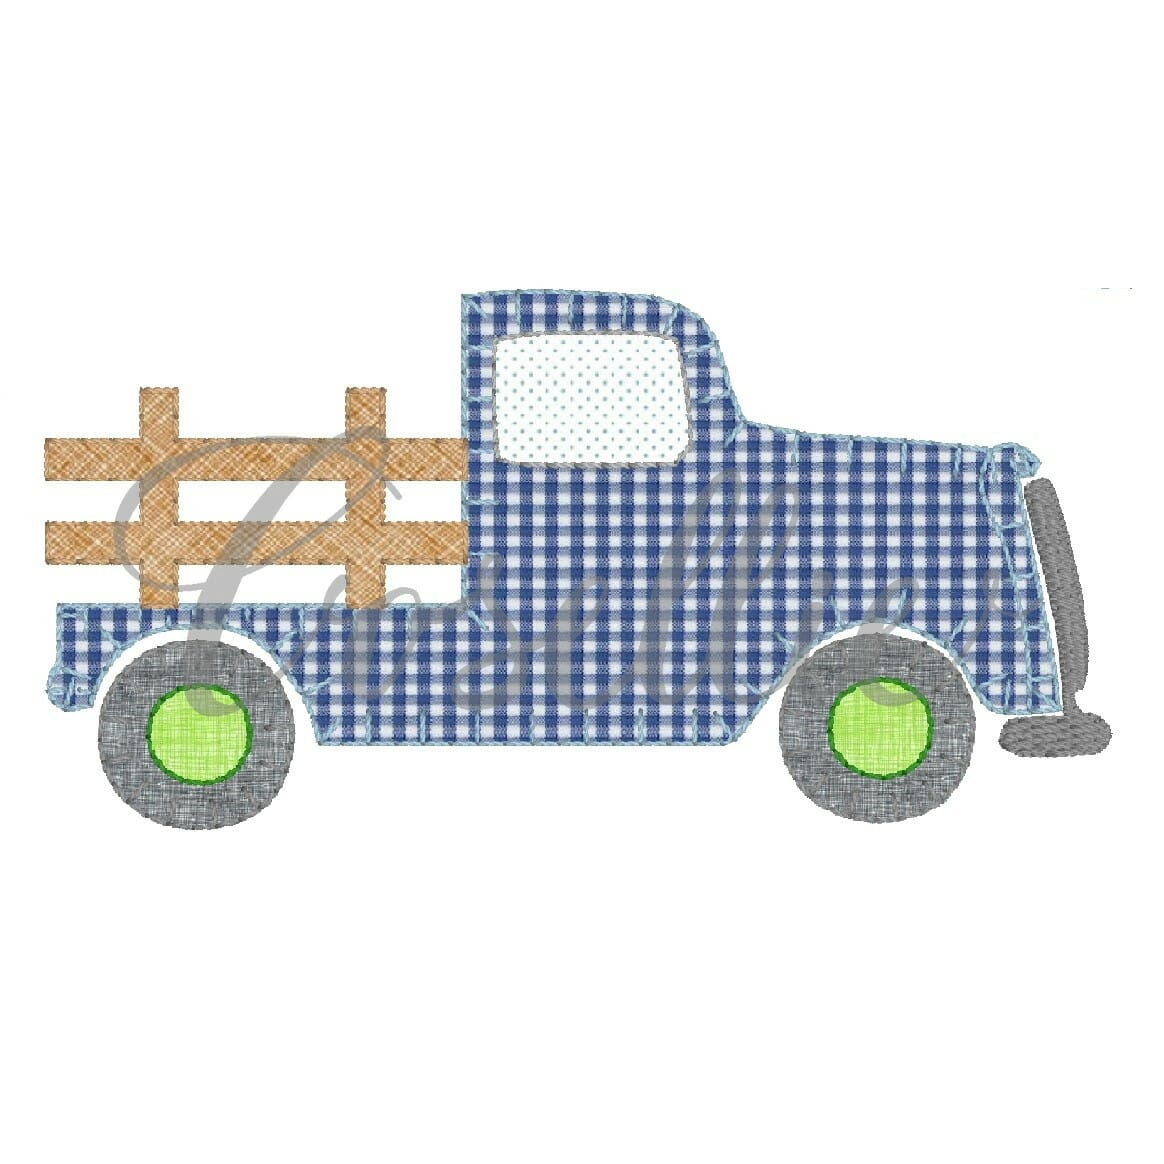 Vintage Truck Embroidery Design Embroidery Design Cosellie